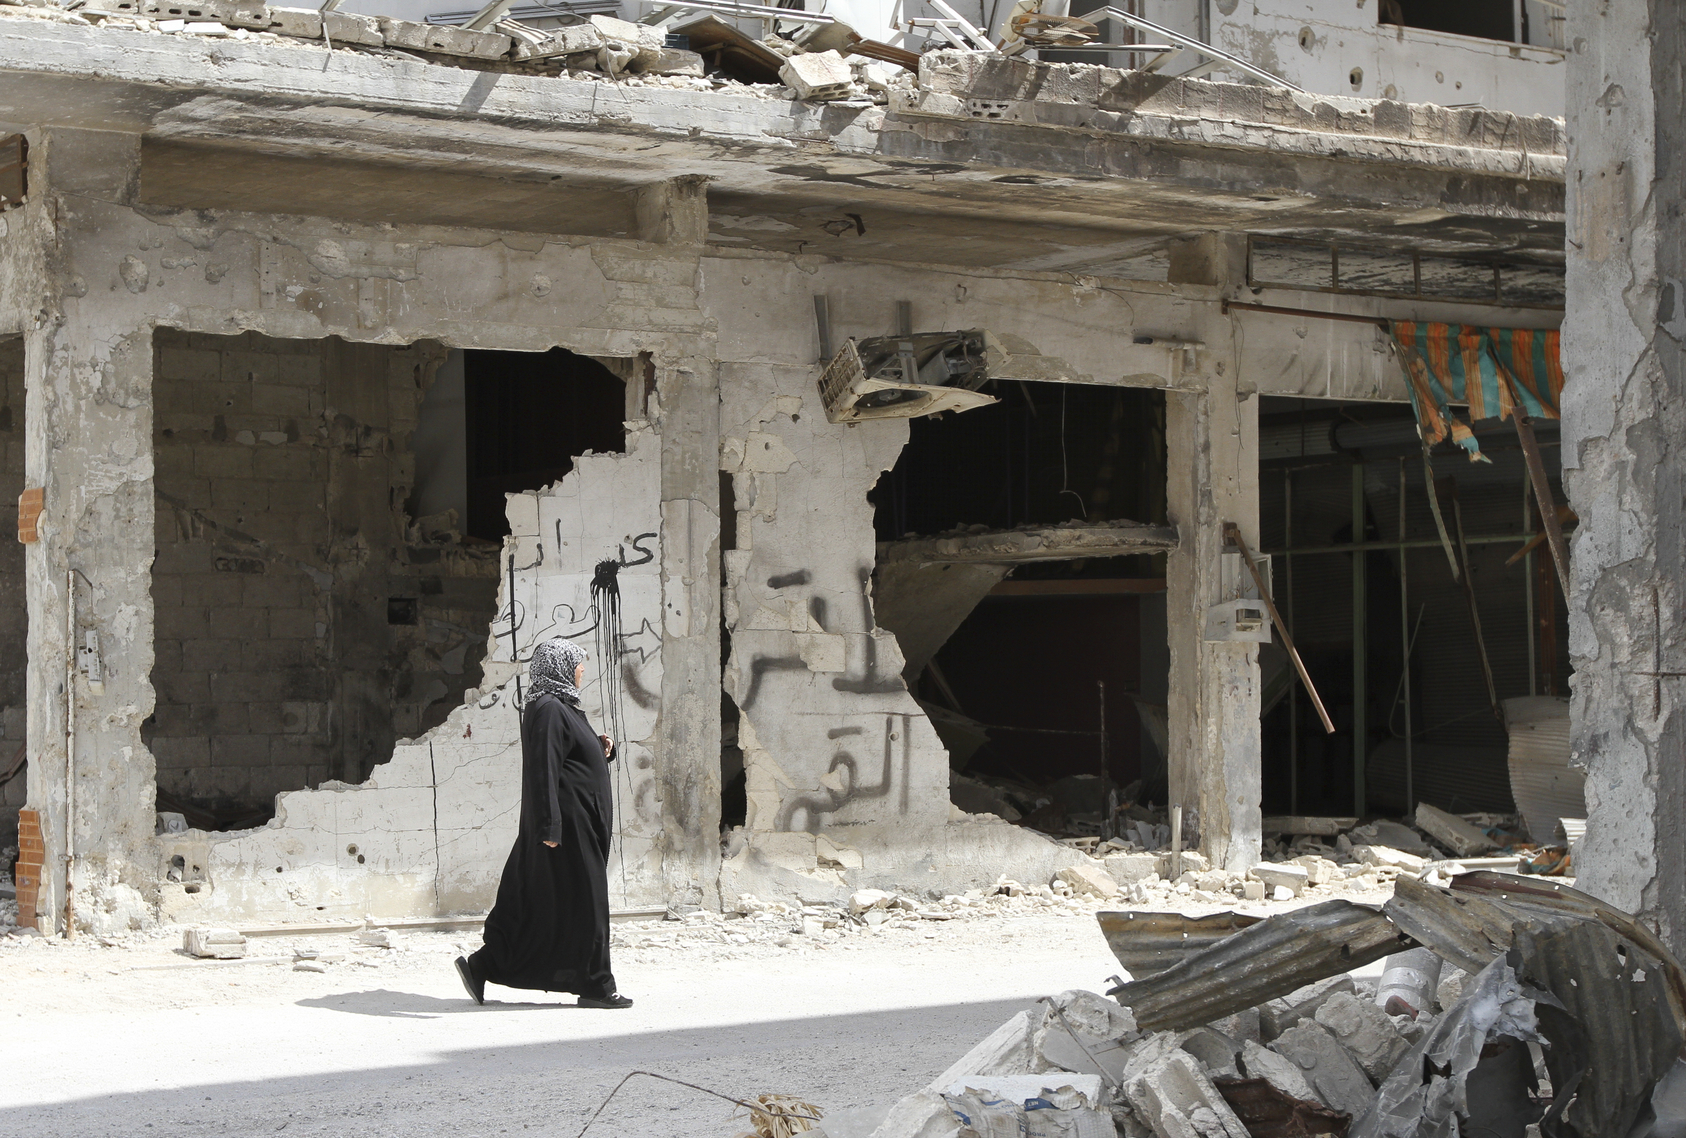 Homs, Syria - September 22, 2013: A woman walks near a house in the city of Homs destroyed in the fighting between the rebels of the Syrian National Army